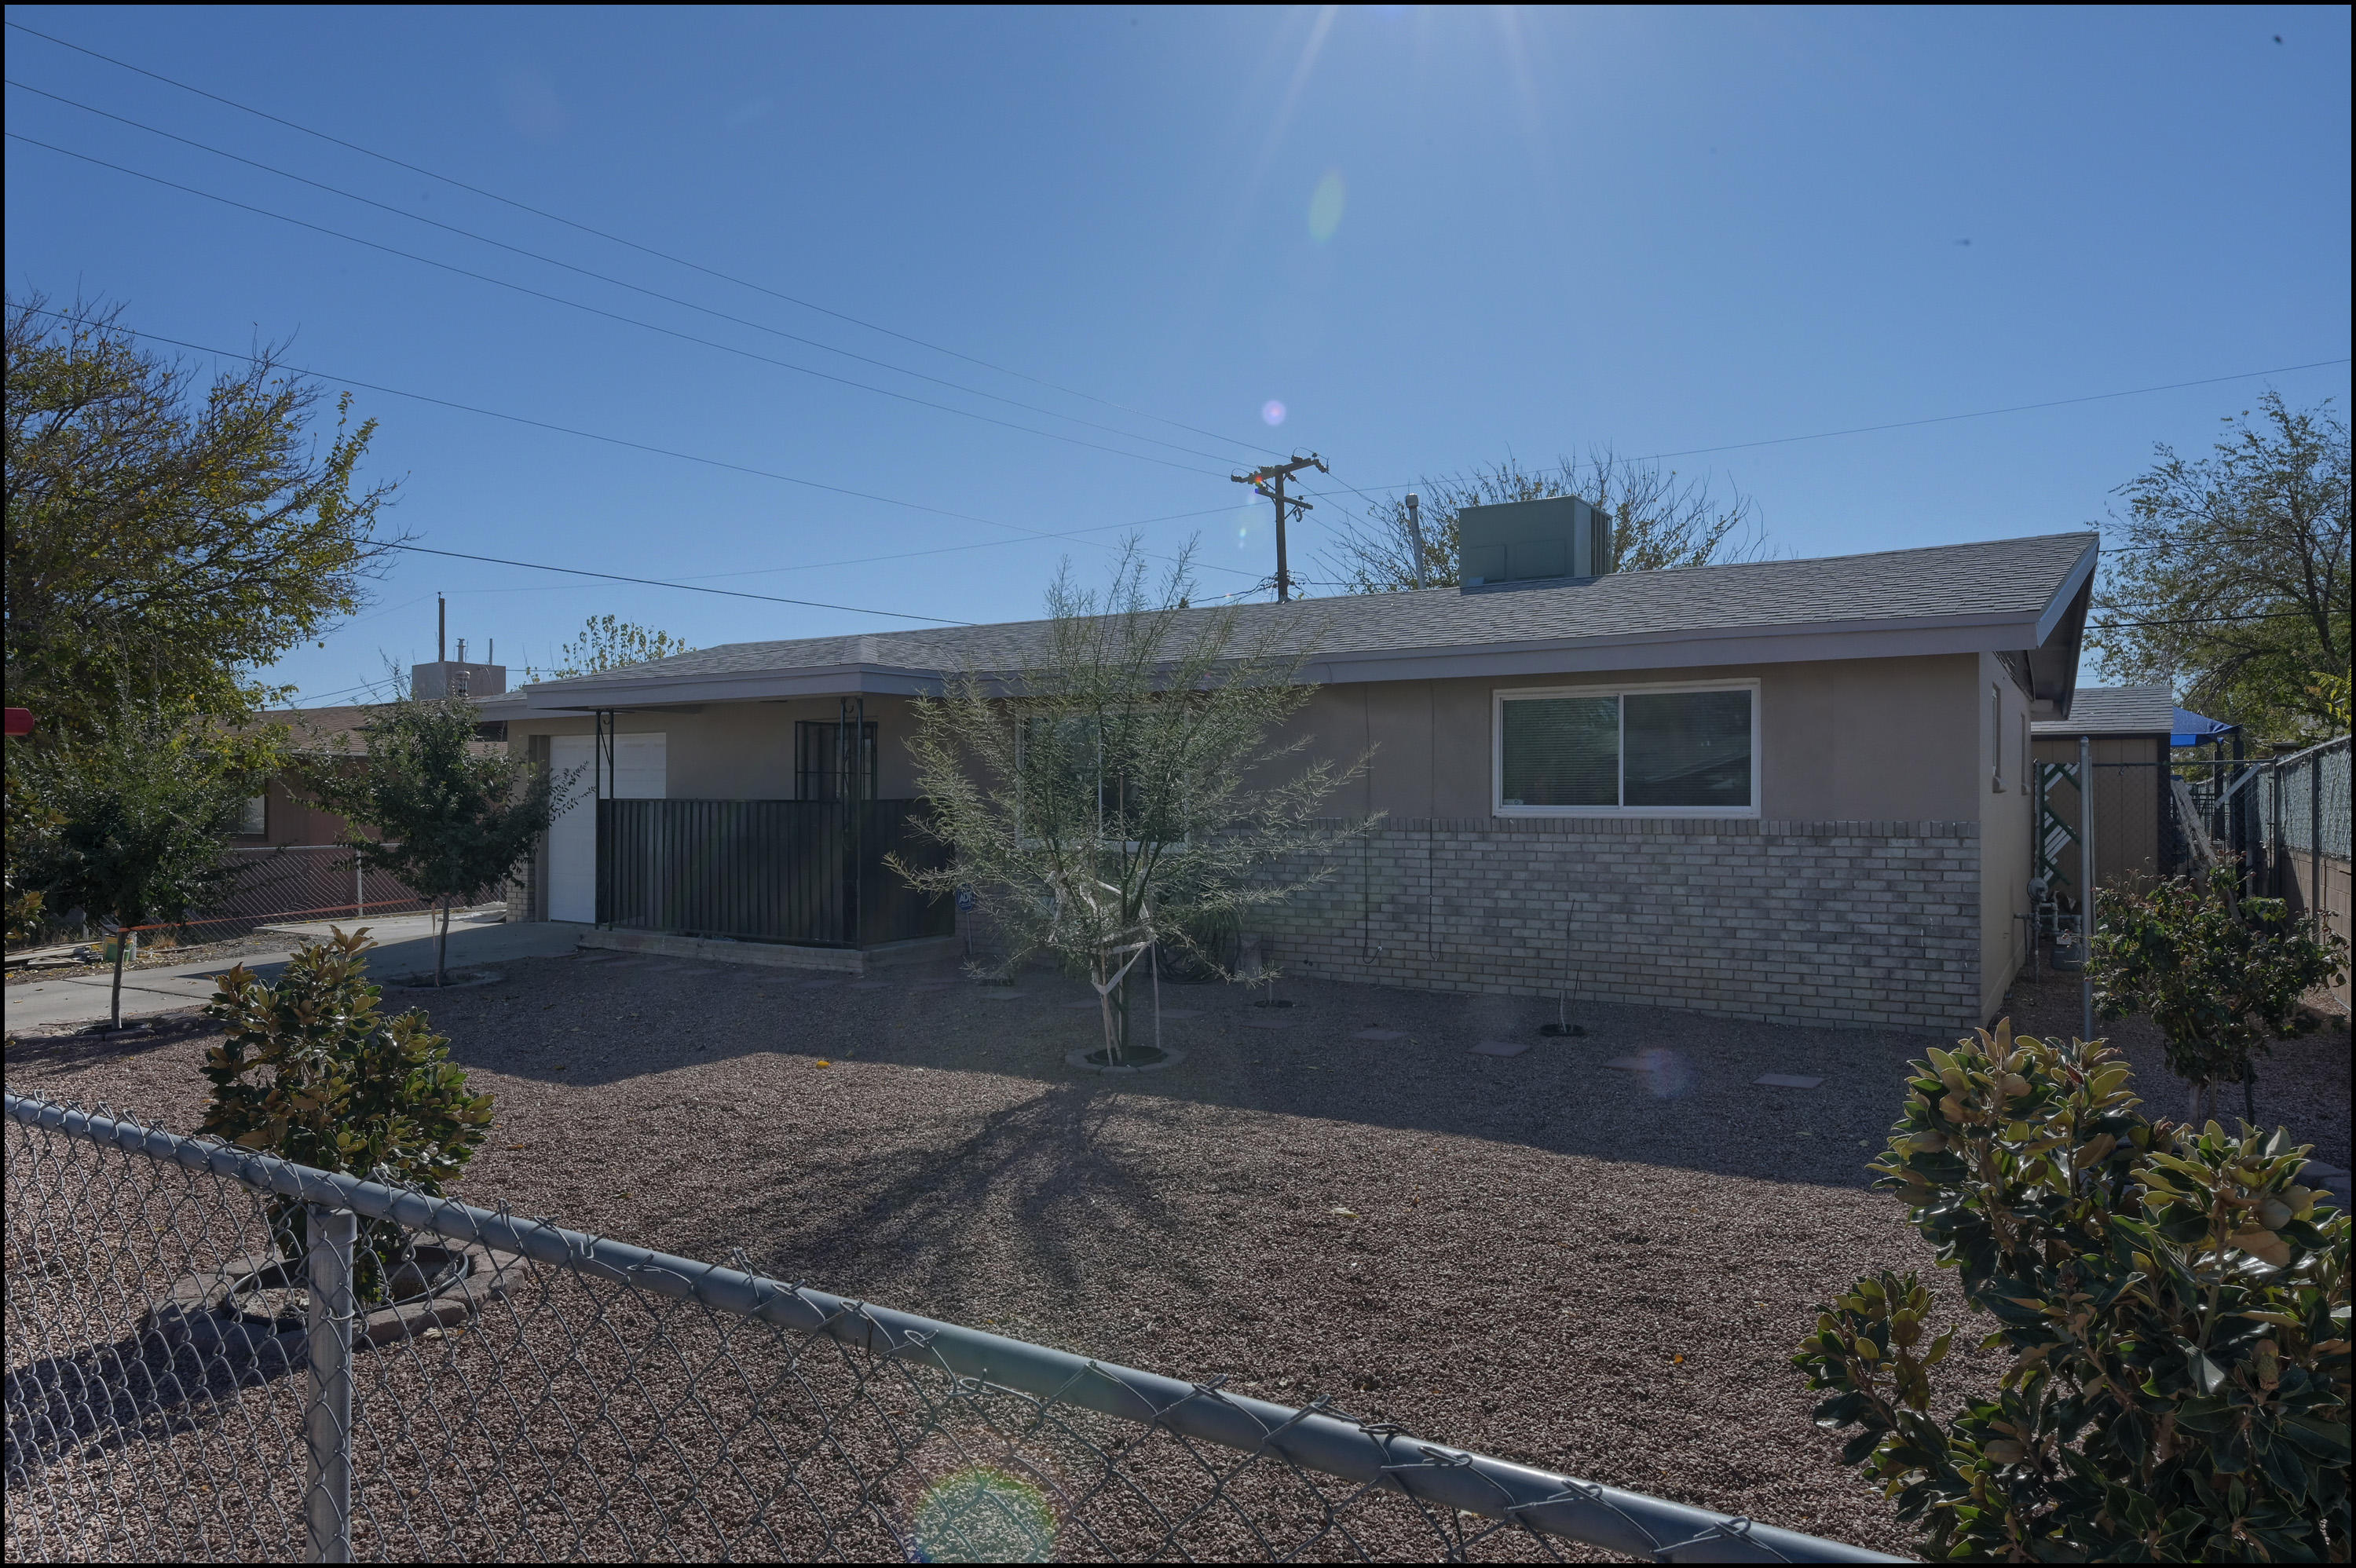 5004 ROYAL, El Paso, Texas 79924, 3 Bedrooms Bedrooms, ,1 BathroomBathrooms,Residential,For sale,ROYAL,837678